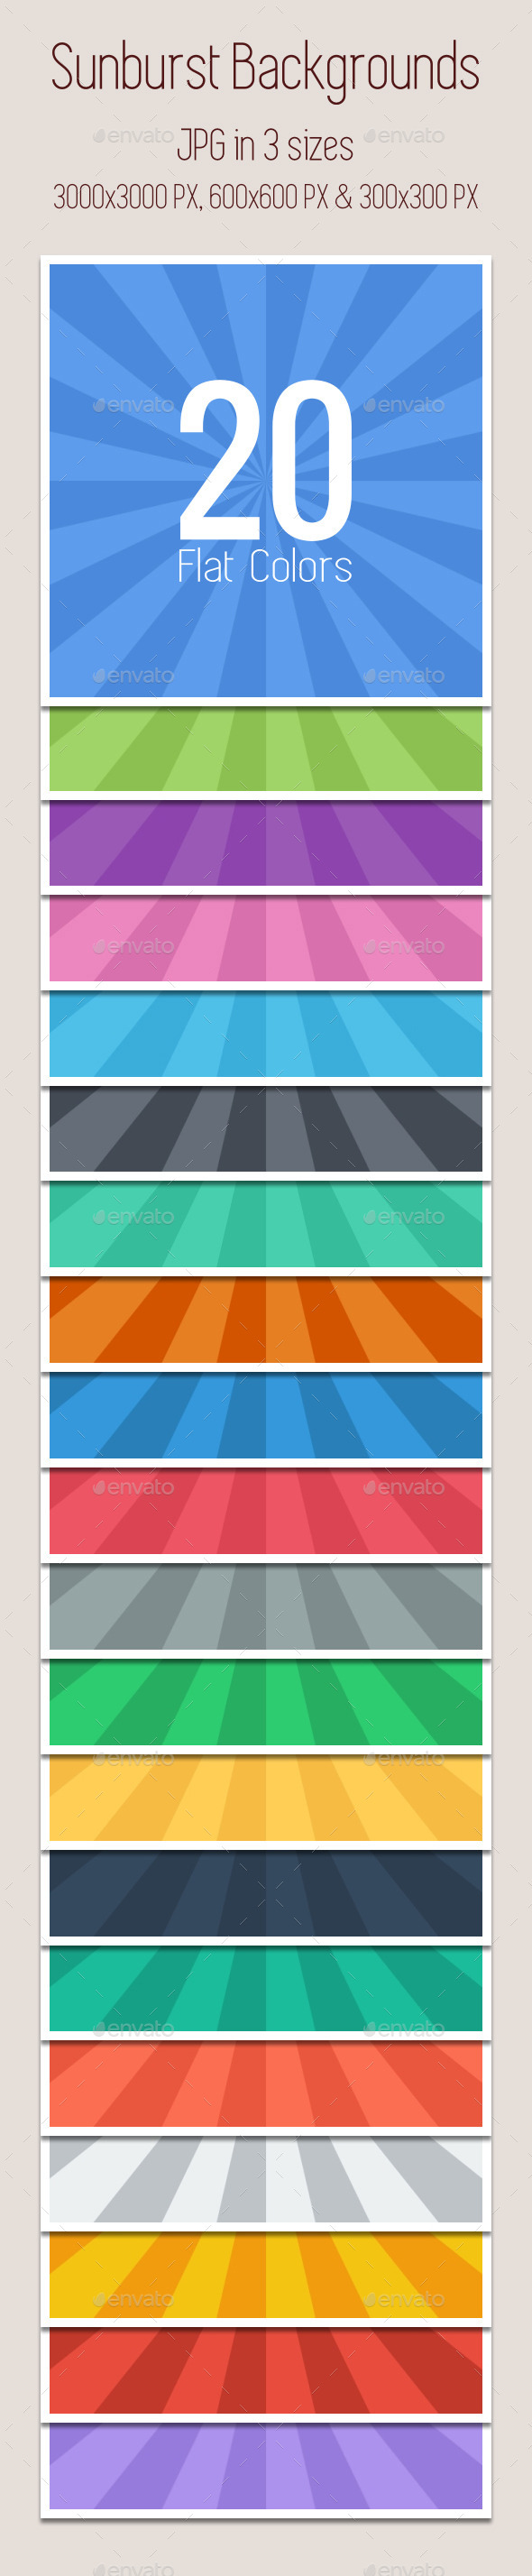 GraphicRiver Sunburst Backgrounds Flat Colors x20 9457415